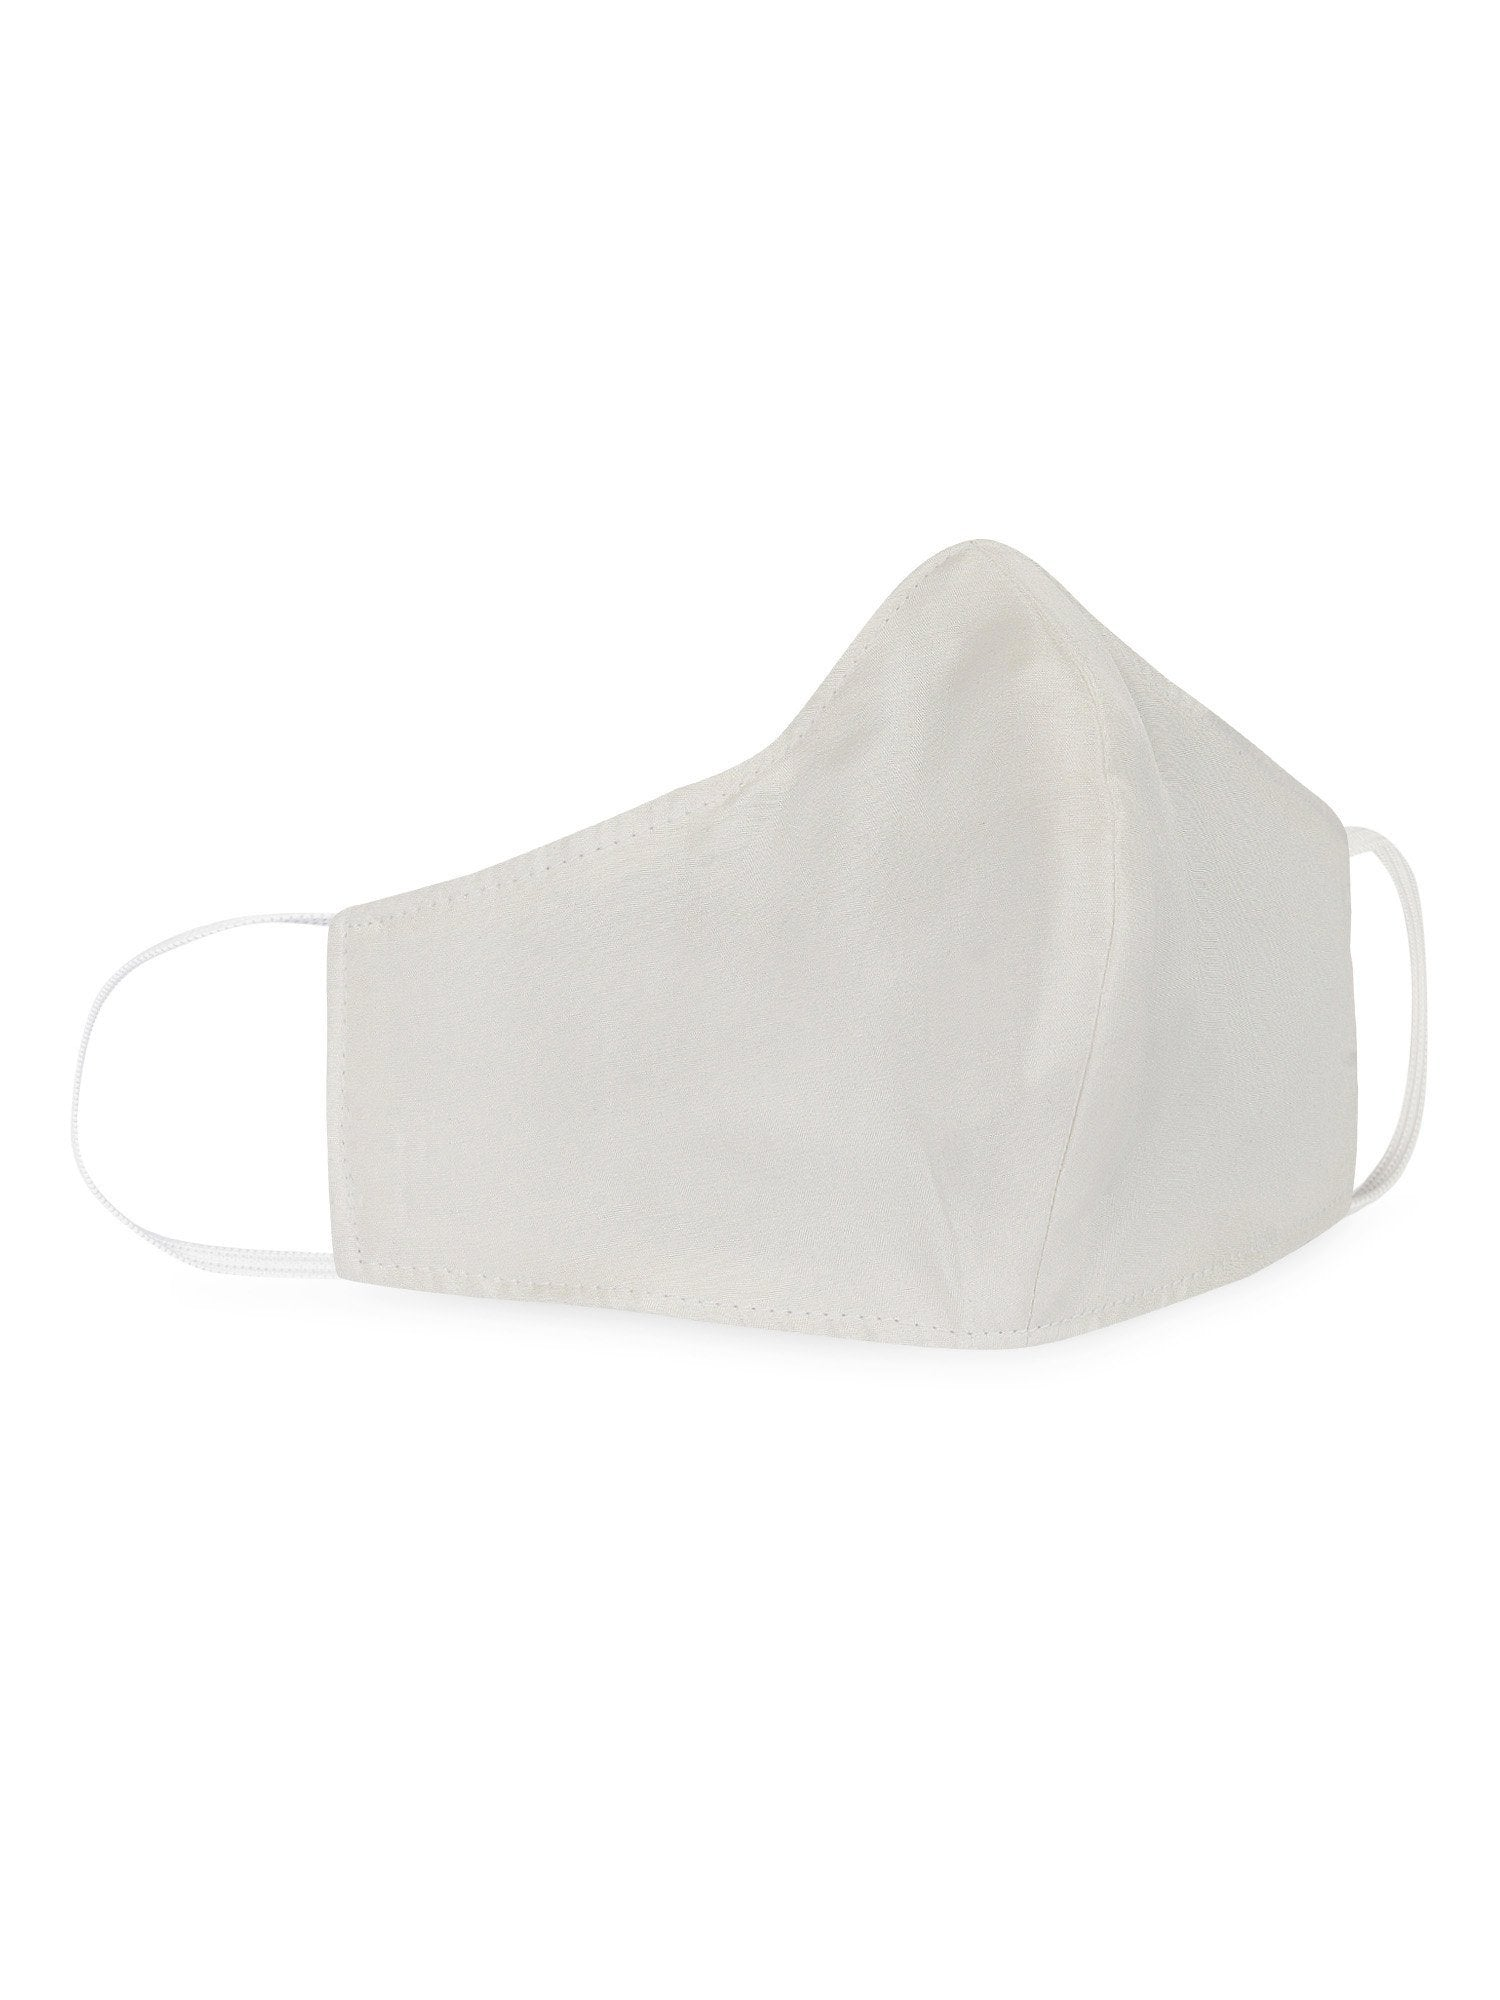 Reusable Silk Face Mask- White - the naked laundry.